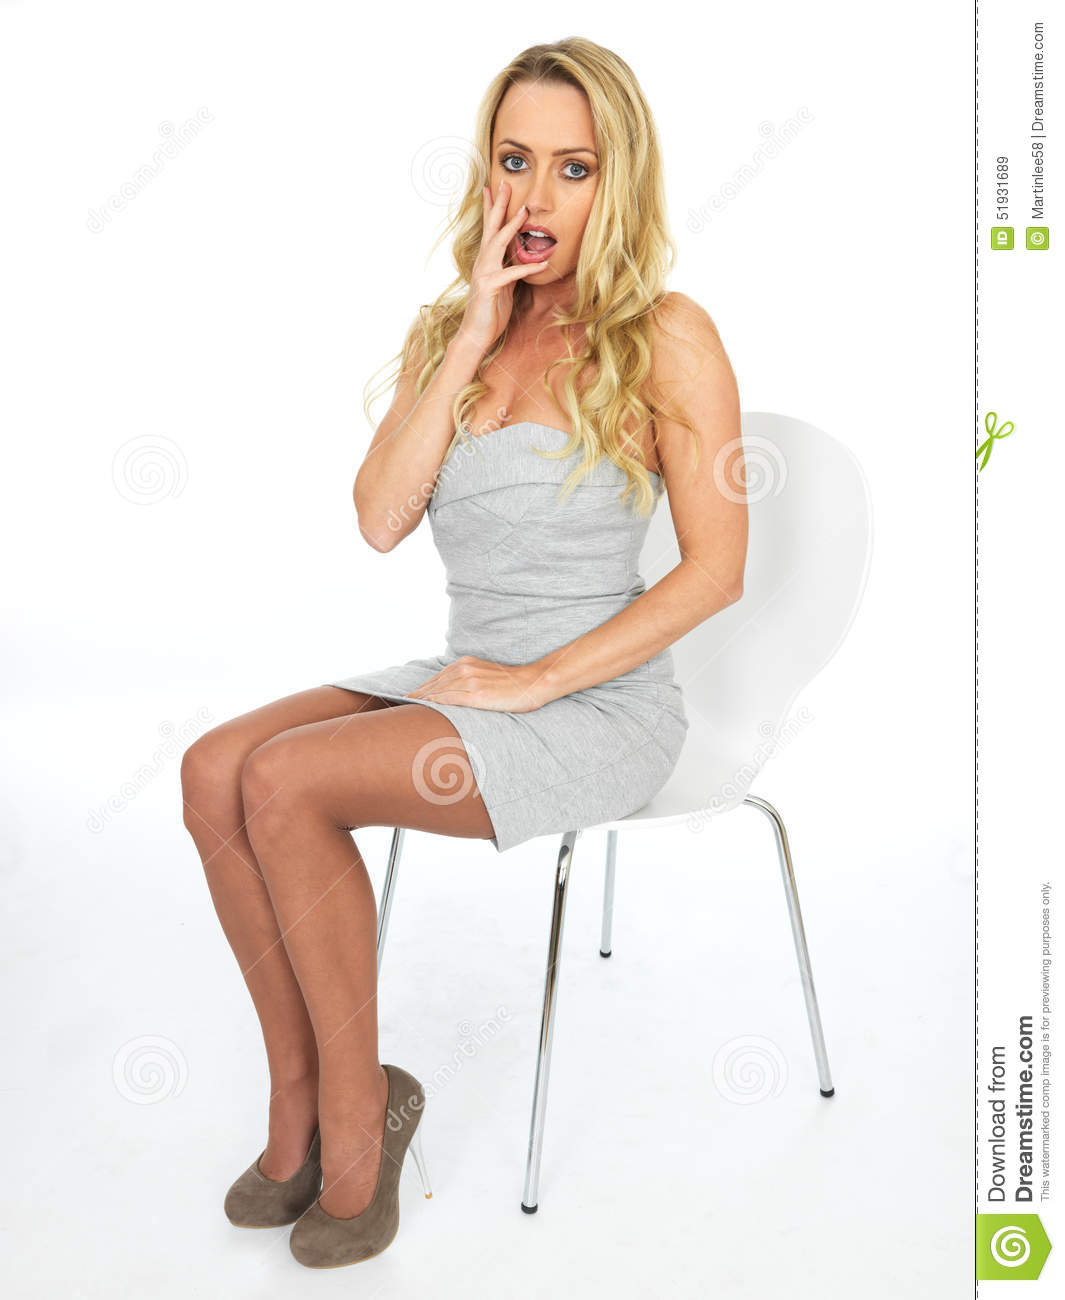 f569265cb9c Shocked Attractive Worried Young Business Woman, wearing a short mini dress,  sitting in a chair, looking at the camera. Shot against a white background.